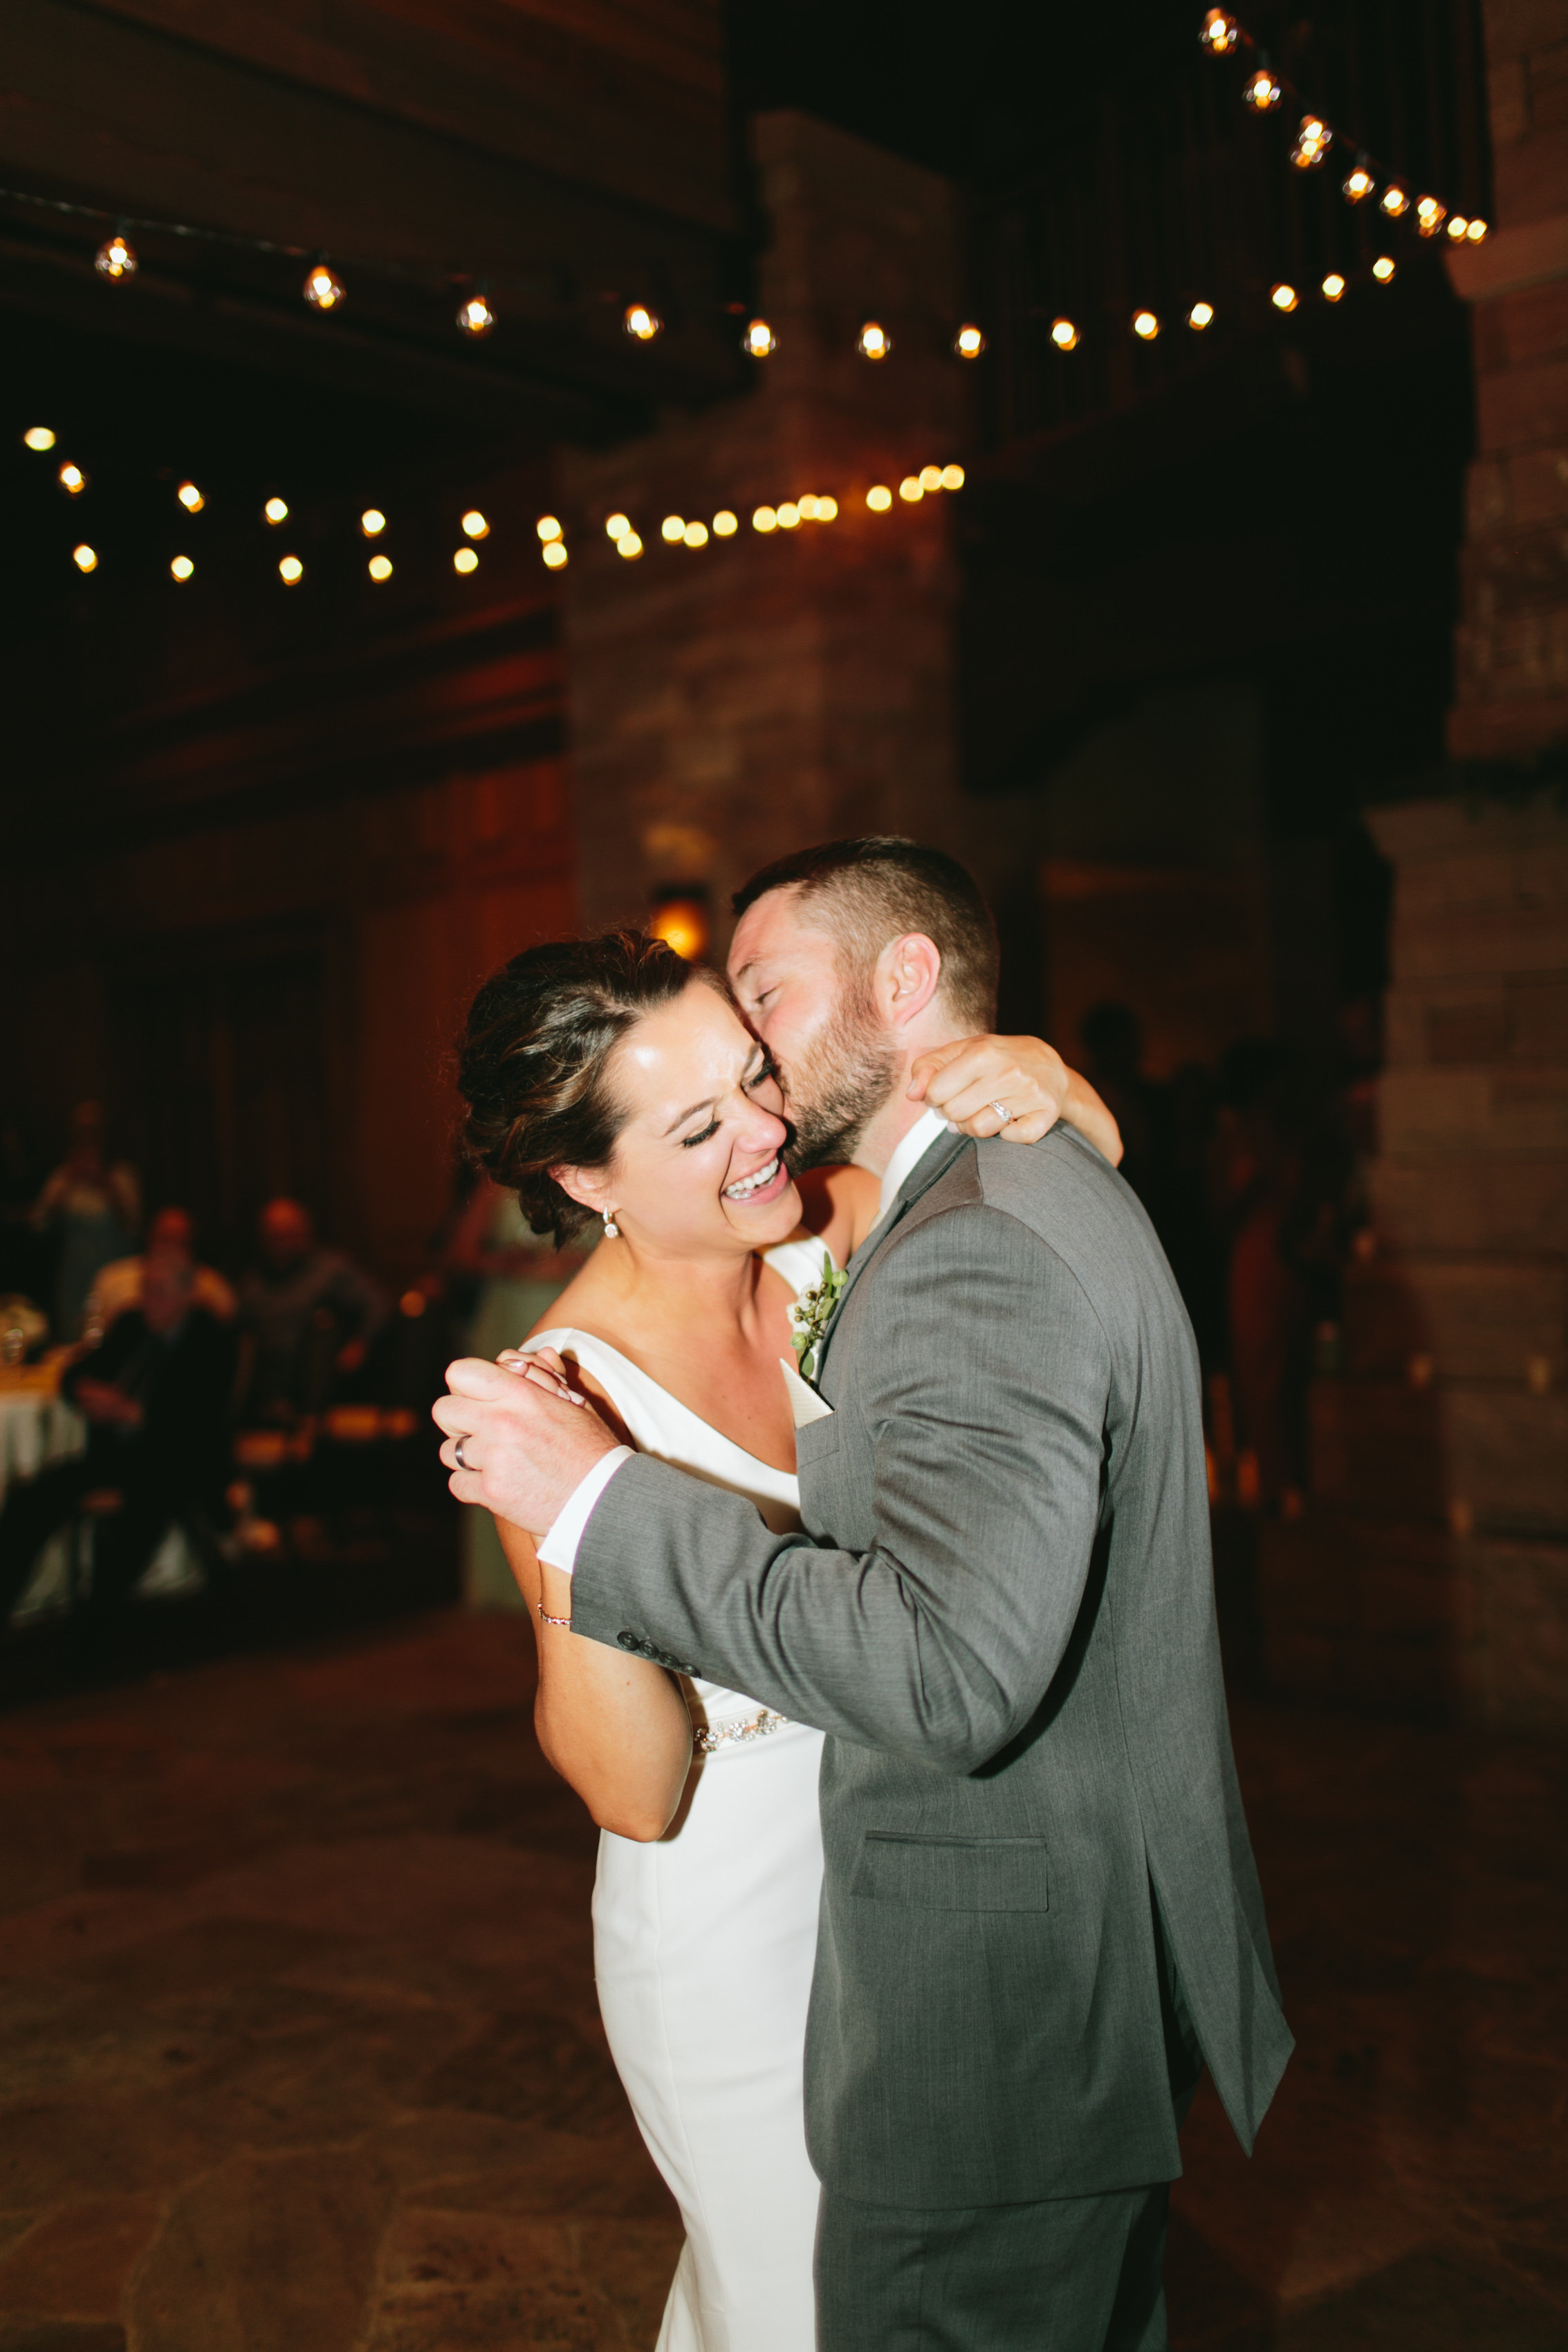 Image by  Brianne Haagenson Photography  at the Sanctuary Golf Club